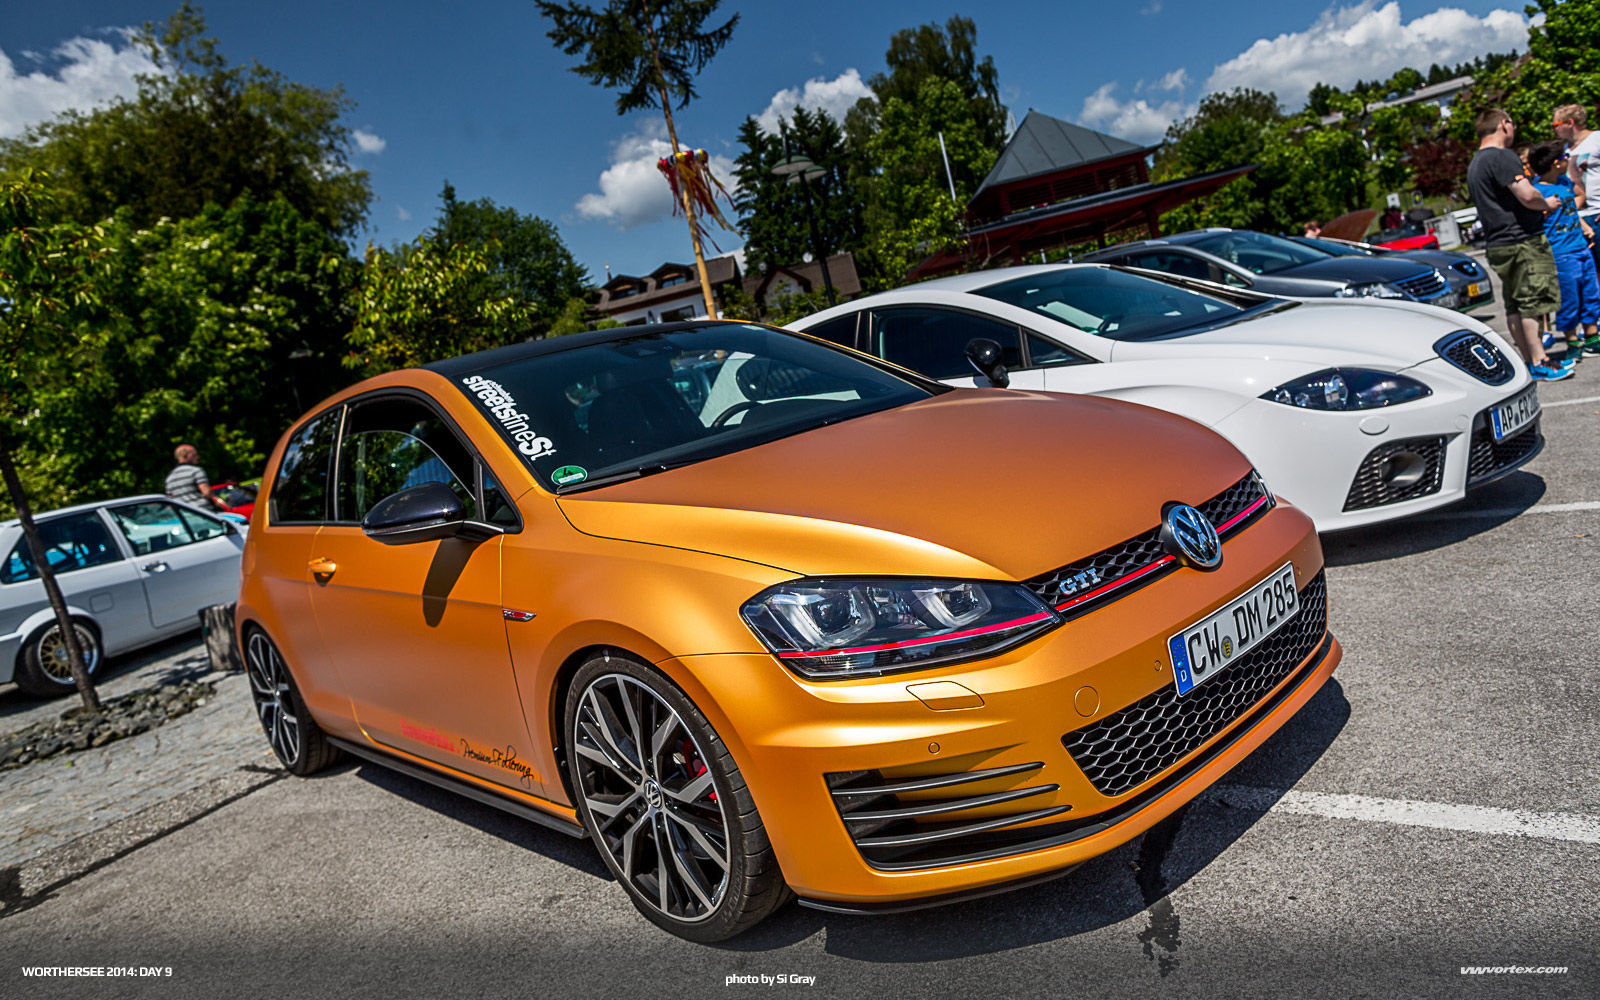 2014-Worthersee-Day-9-Si-Gray-384